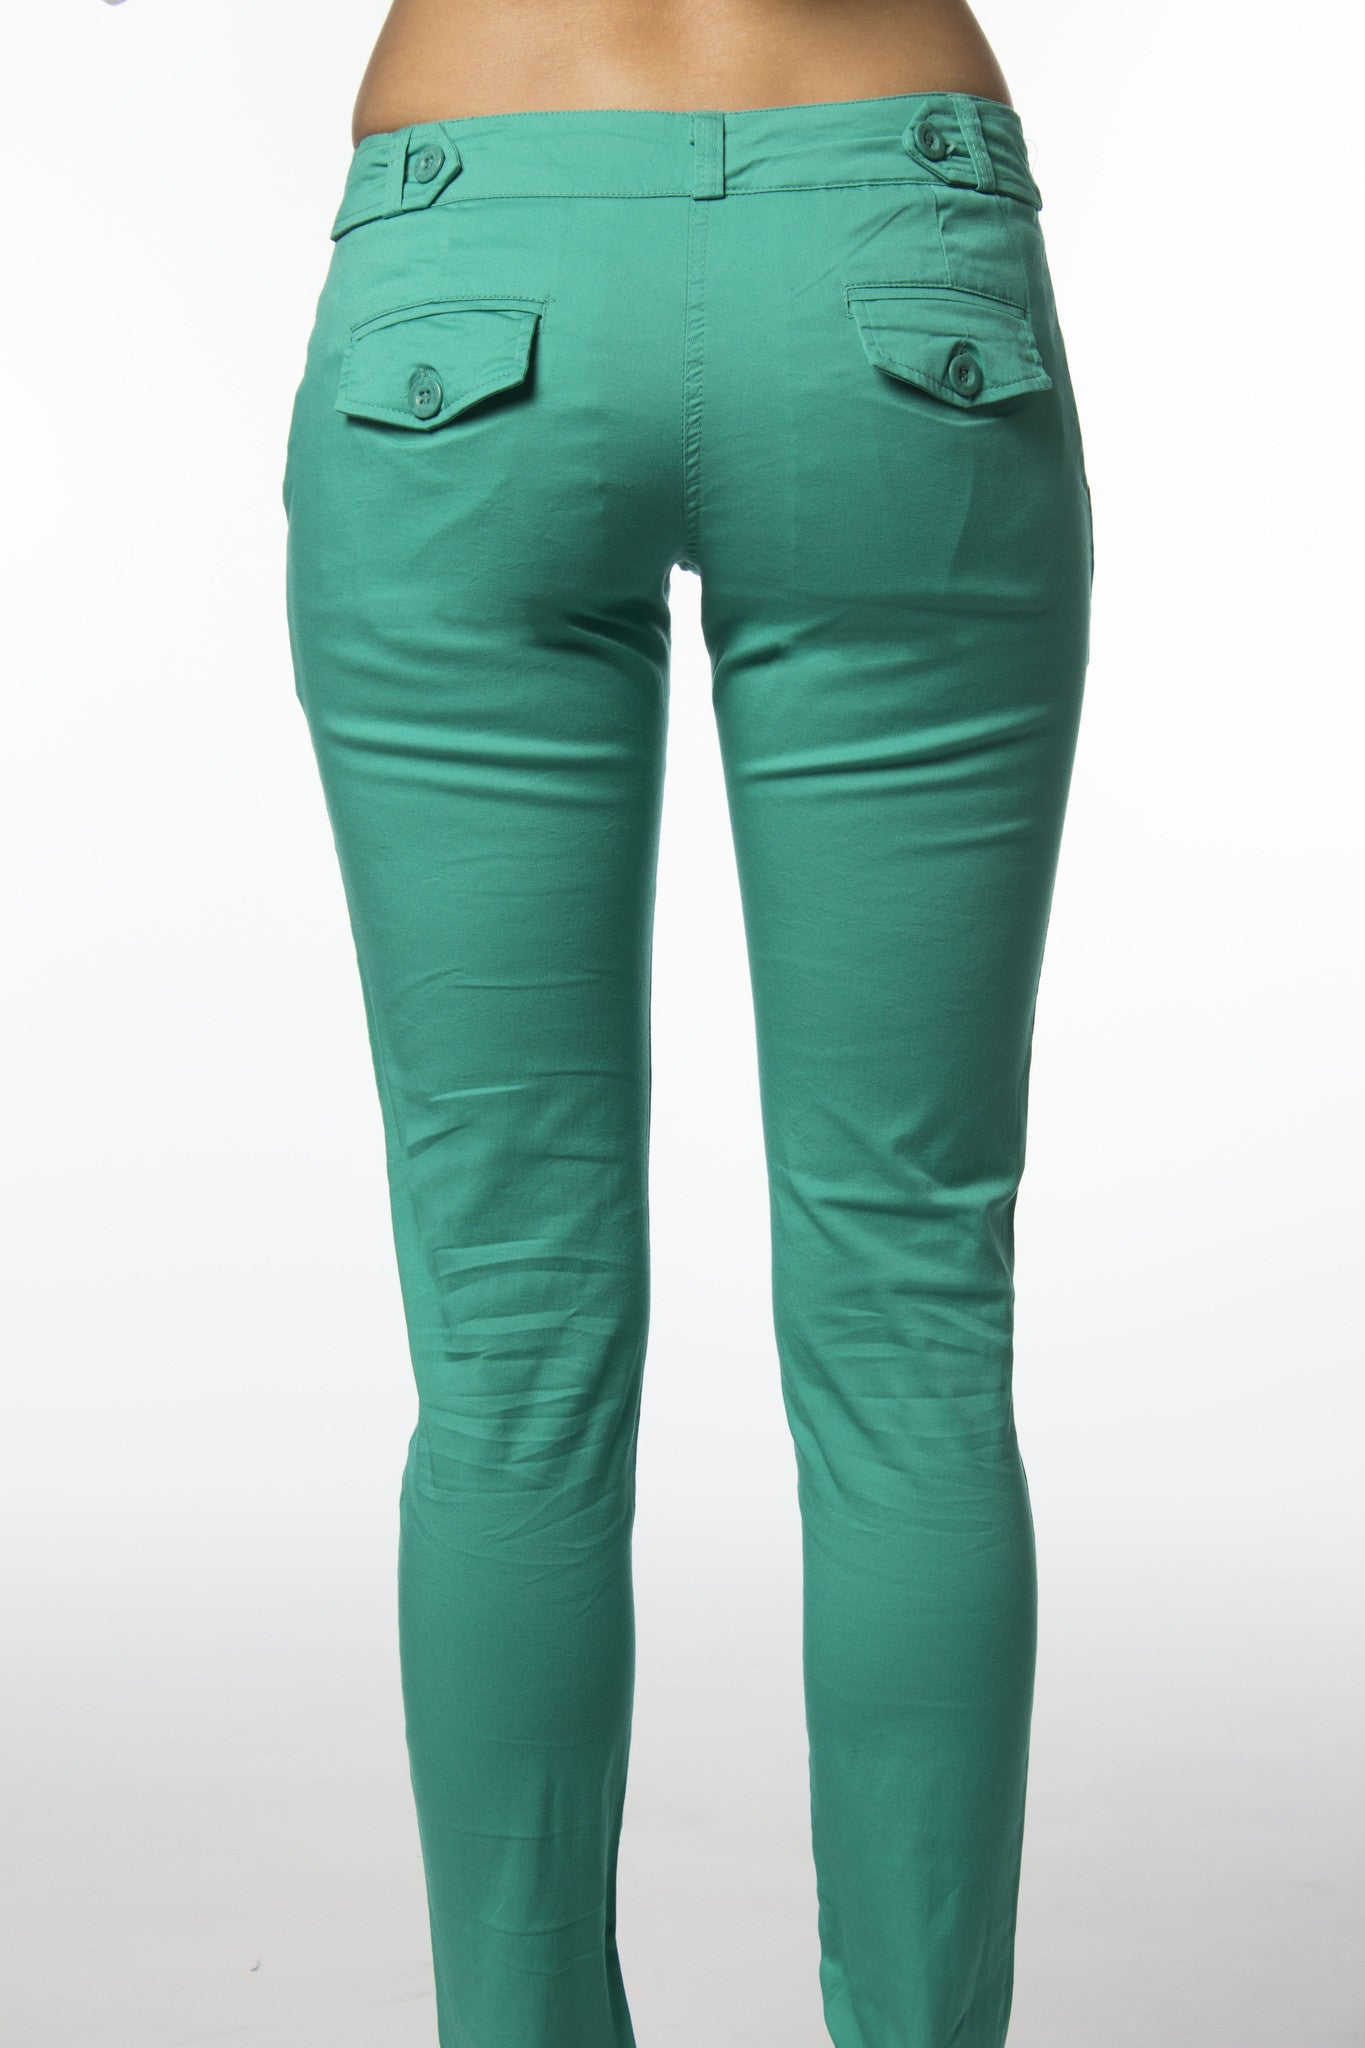 green cotton pant with back flap pockets